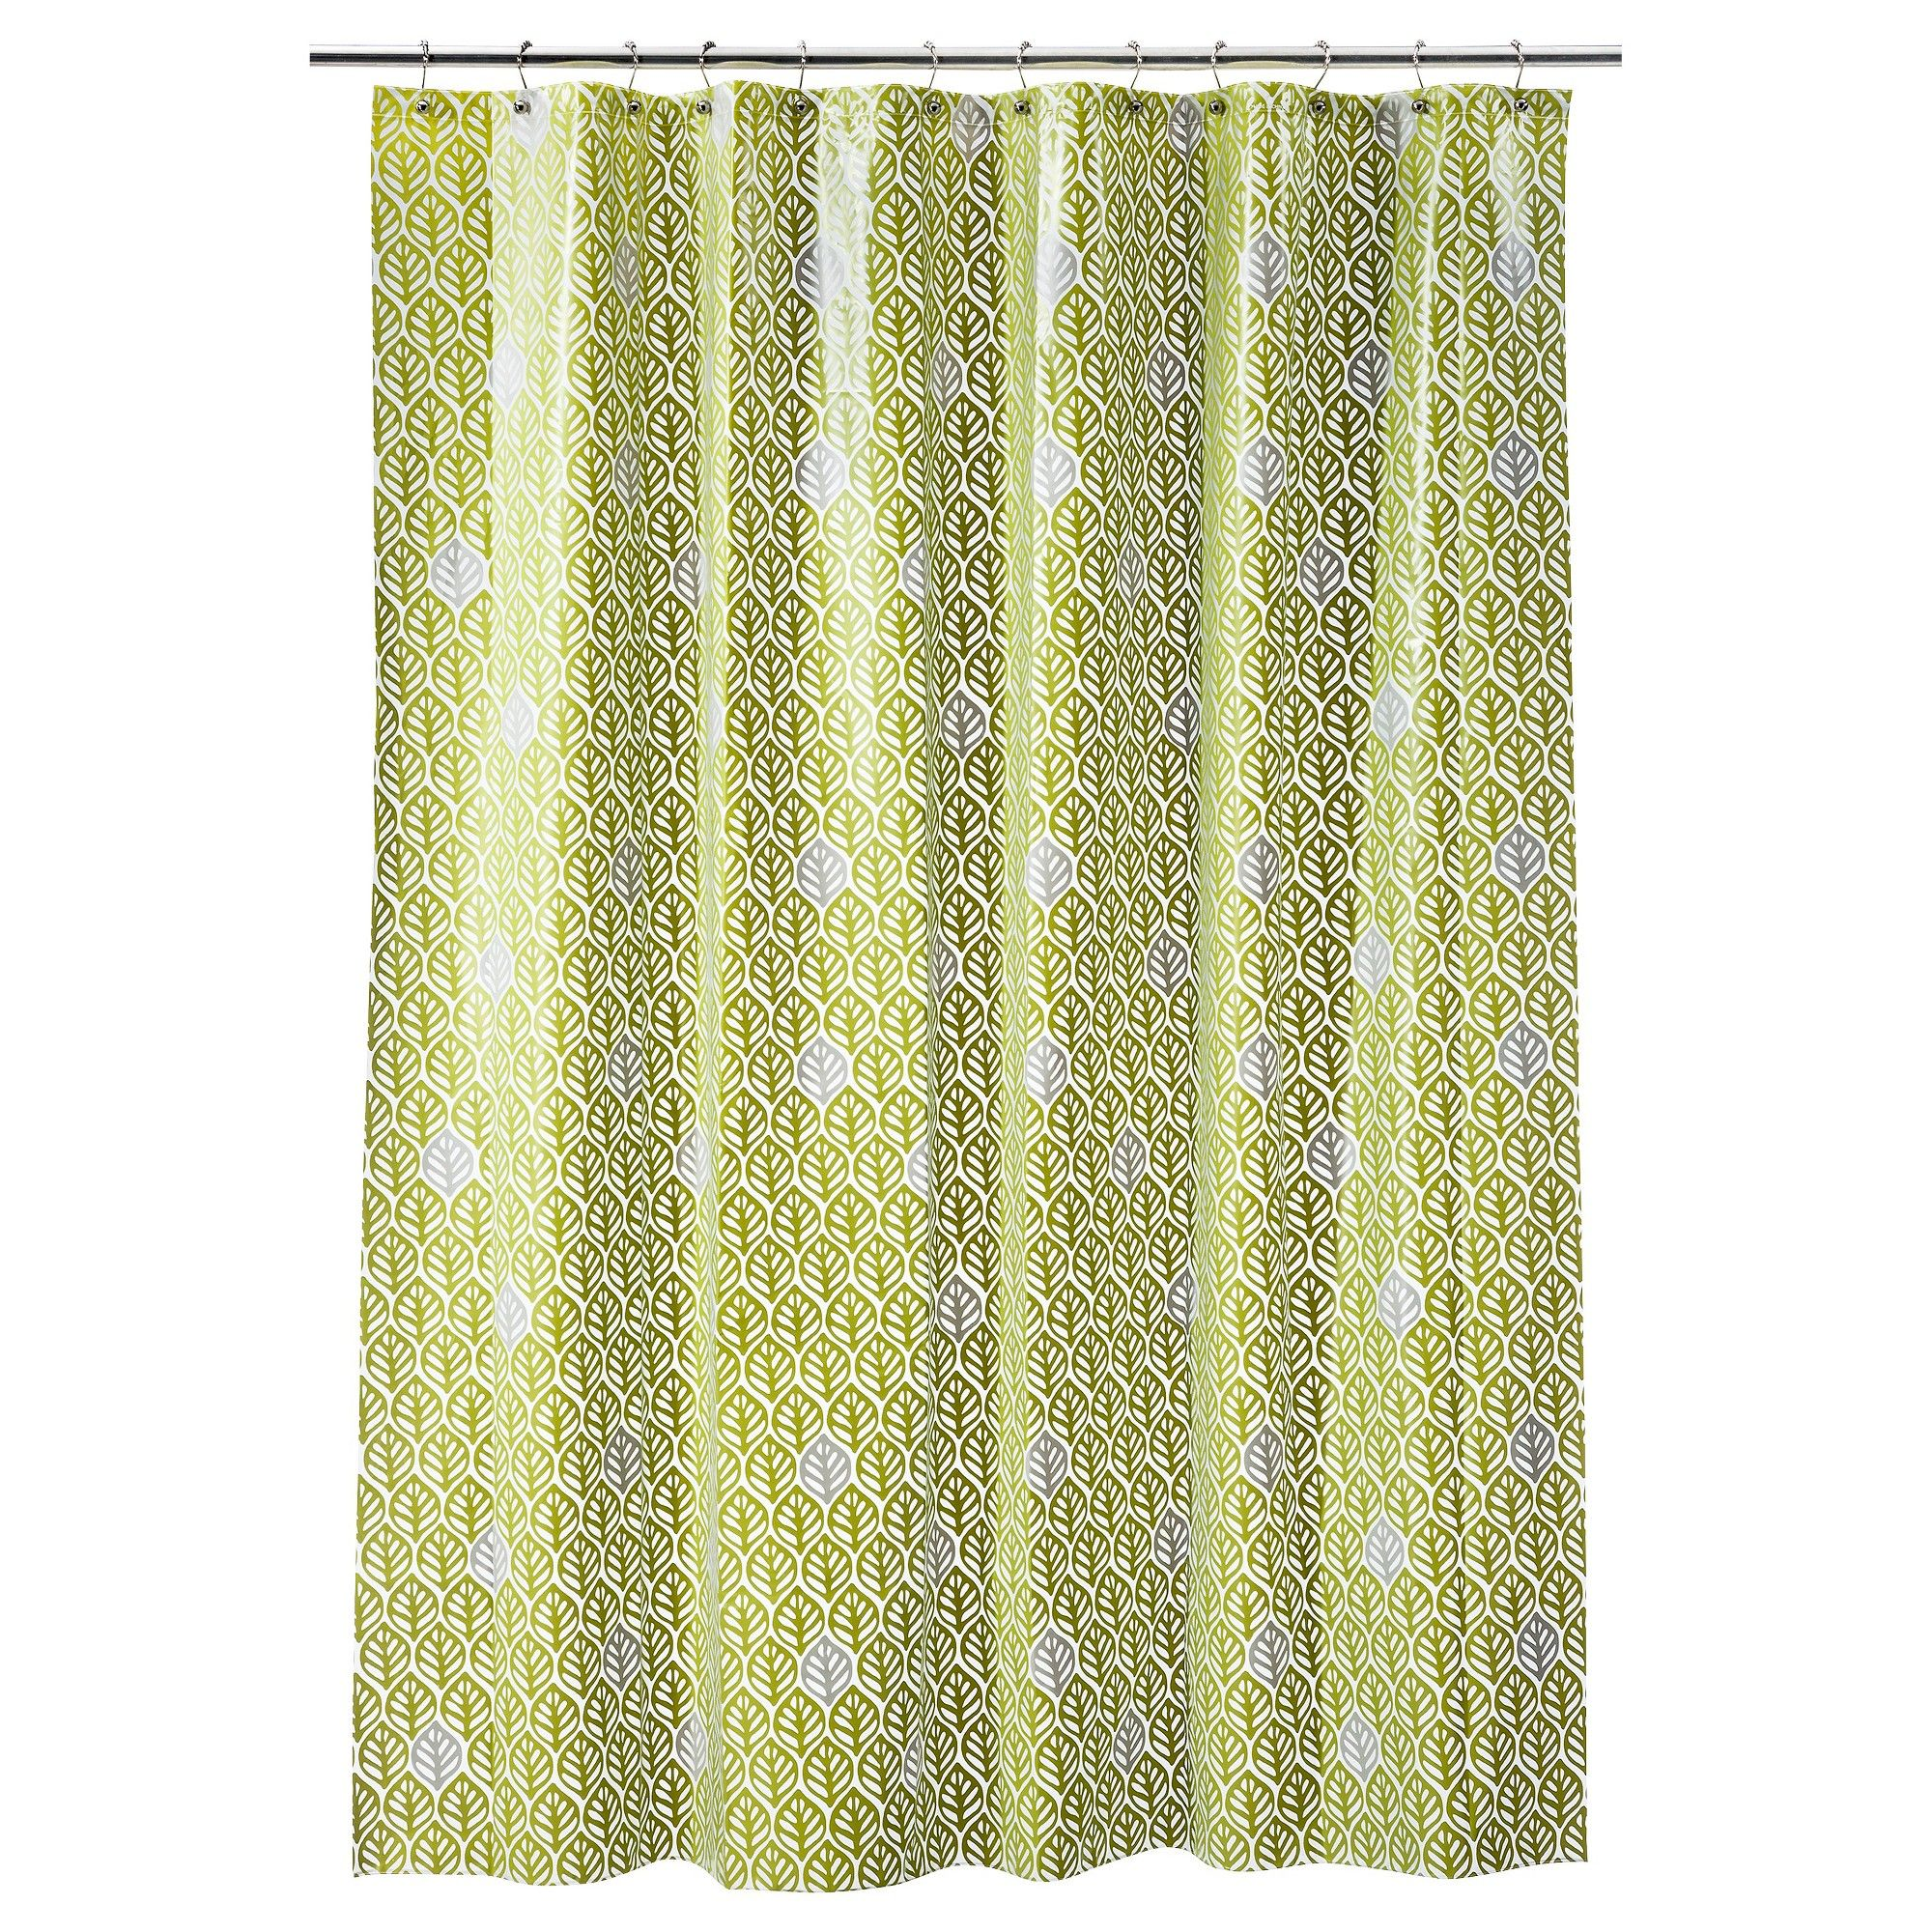 Leaf geometric shower curtain green room essentials products